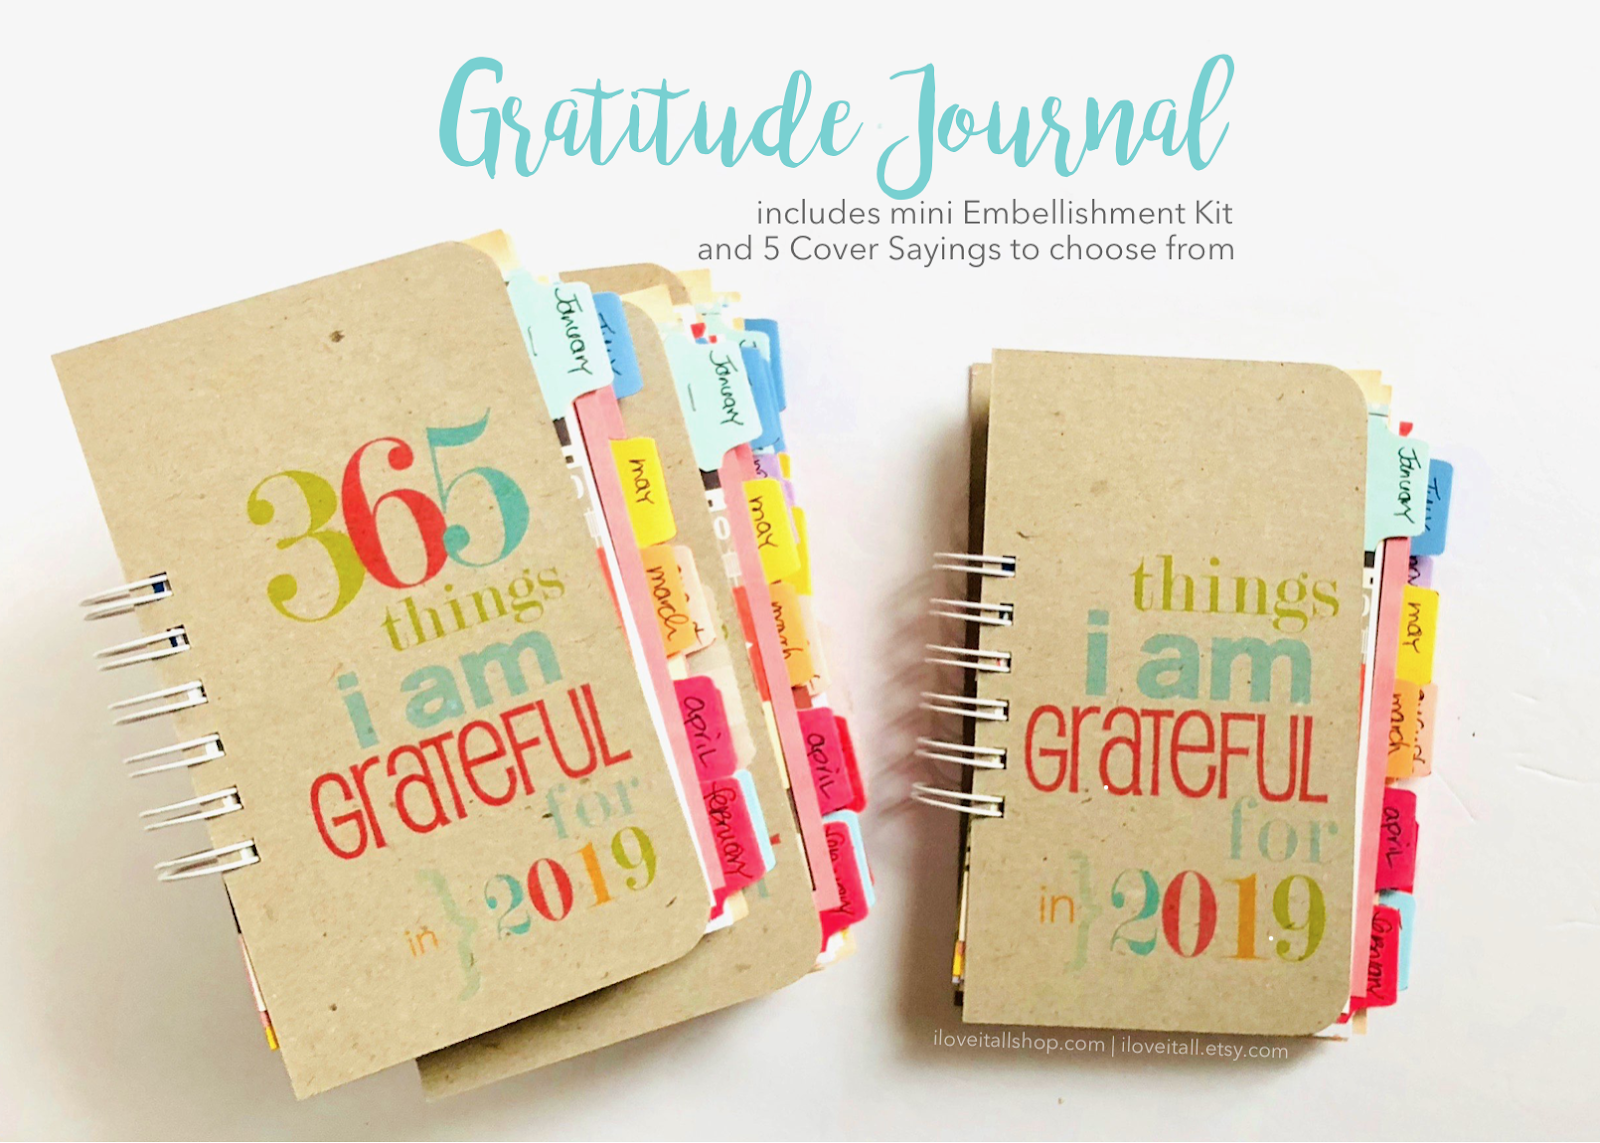 #gratitude journal #gratitude #grateful #thankful #thankfulness #mindfulness #365 Things I Am Grateful For #gratefulness #journal #I Am Thankful For